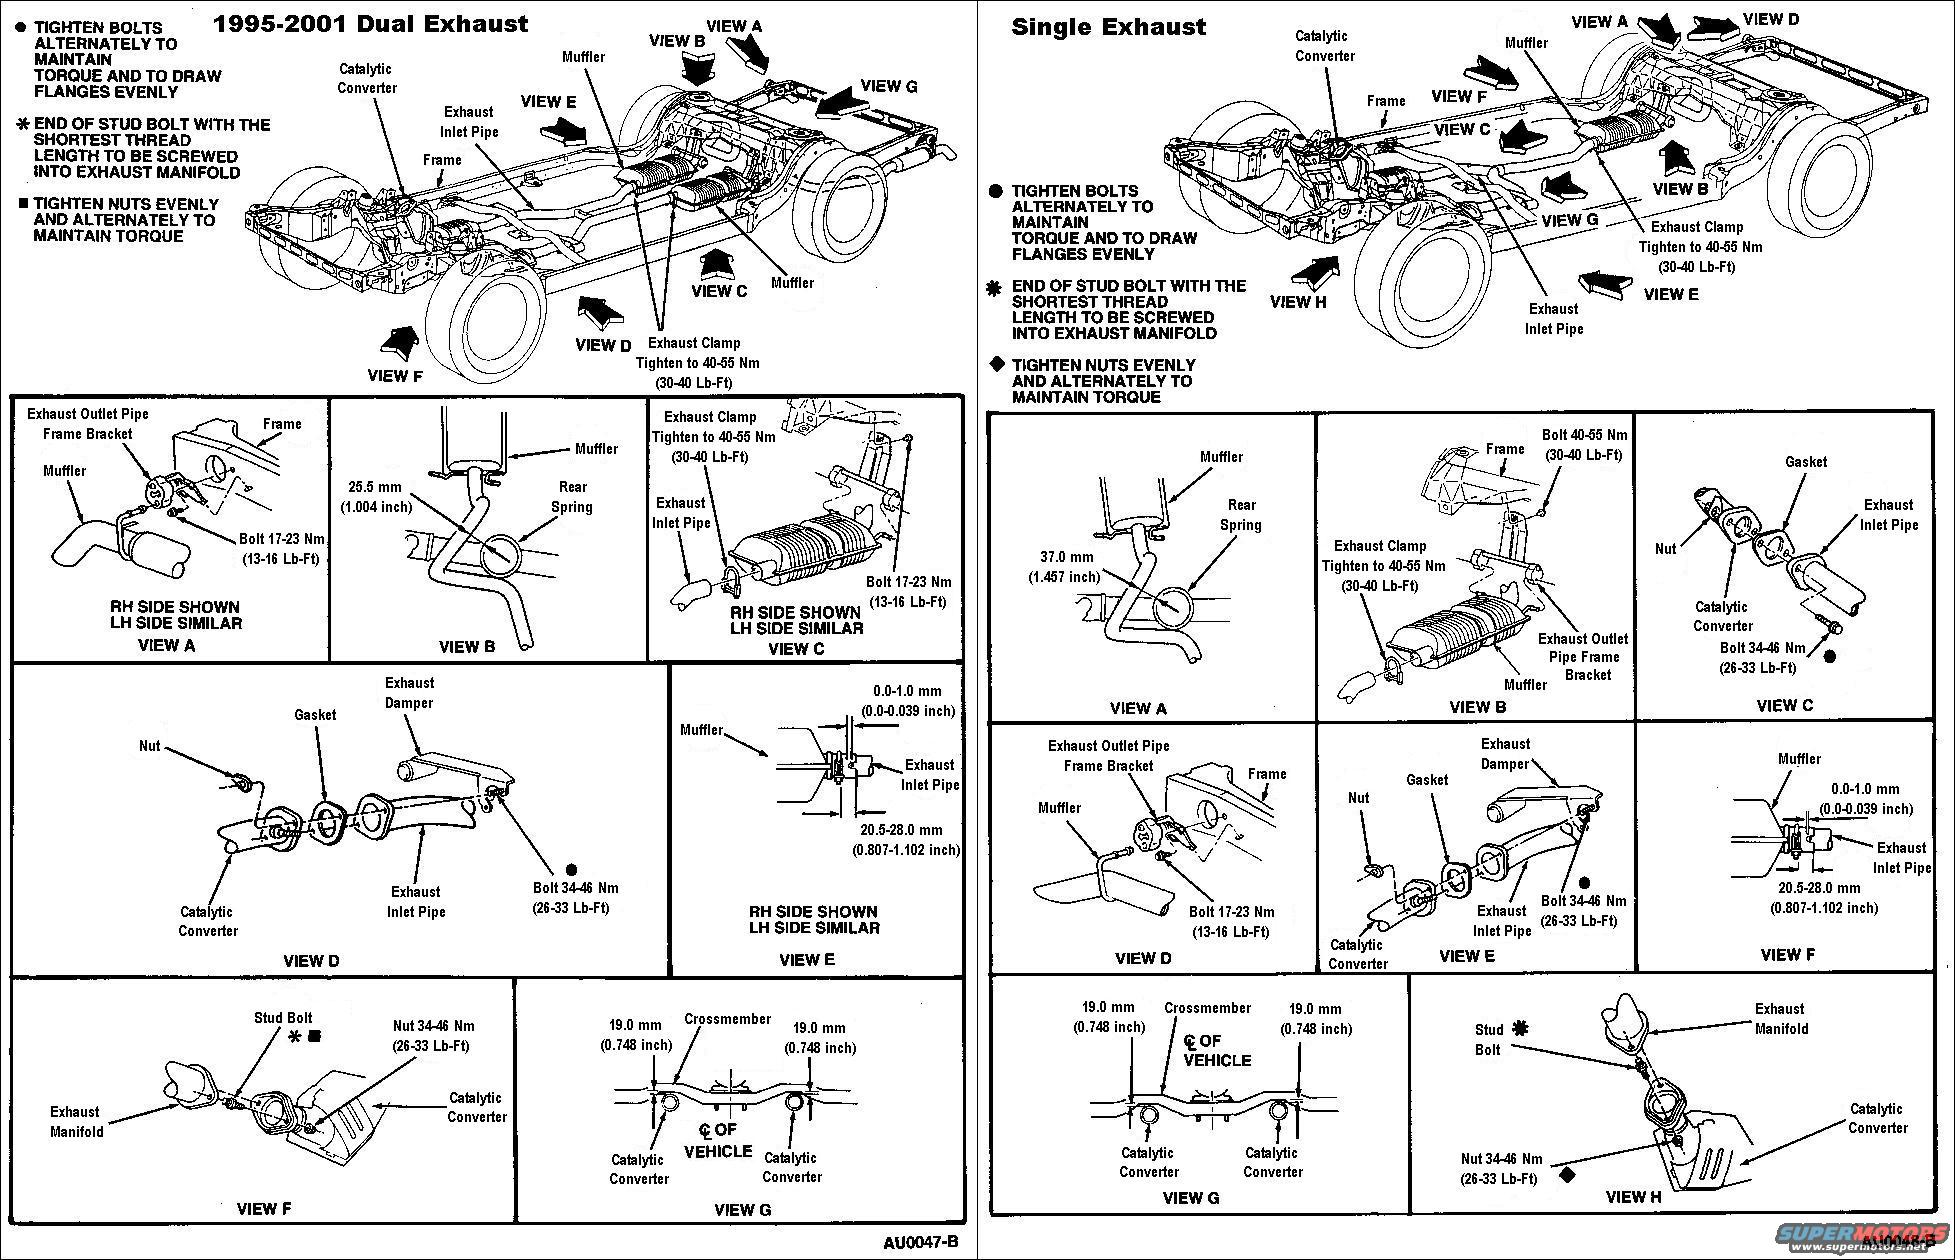 Fuse Box Diagram 1992 Ford E350 Van Wiring Library 98 2001 Crown Victoria Engine Block And Schematic Diagrams U2022 1995